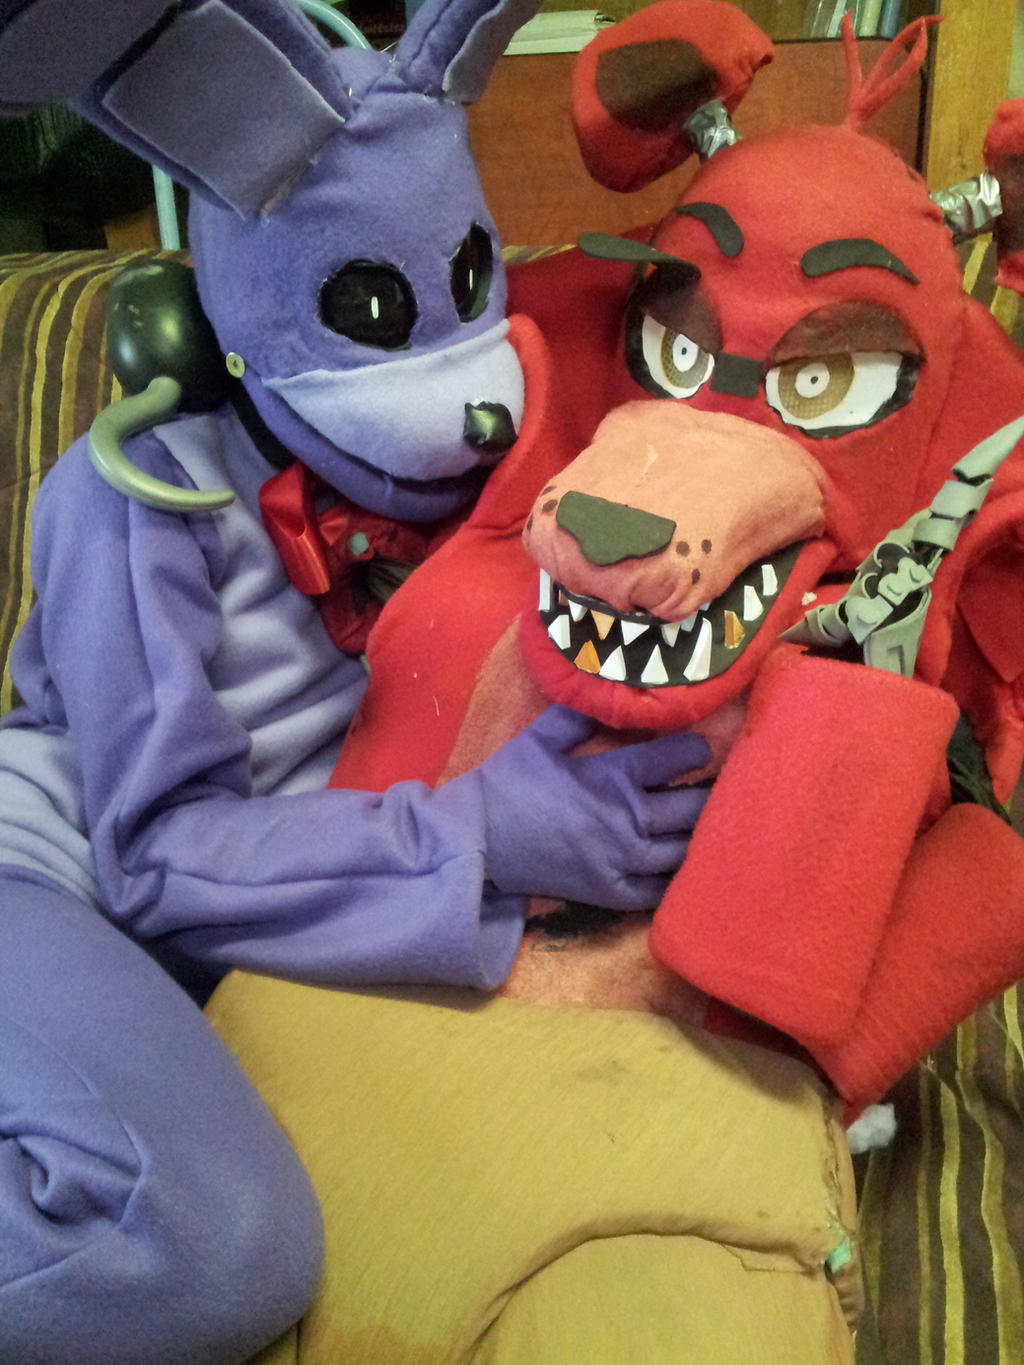 Fnaf bonnie costume for sale - Bonnie And Foxy Fnaf By Foxytwerkbutt Bonnie And Foxy Fnaf By Foxytwerkbutt